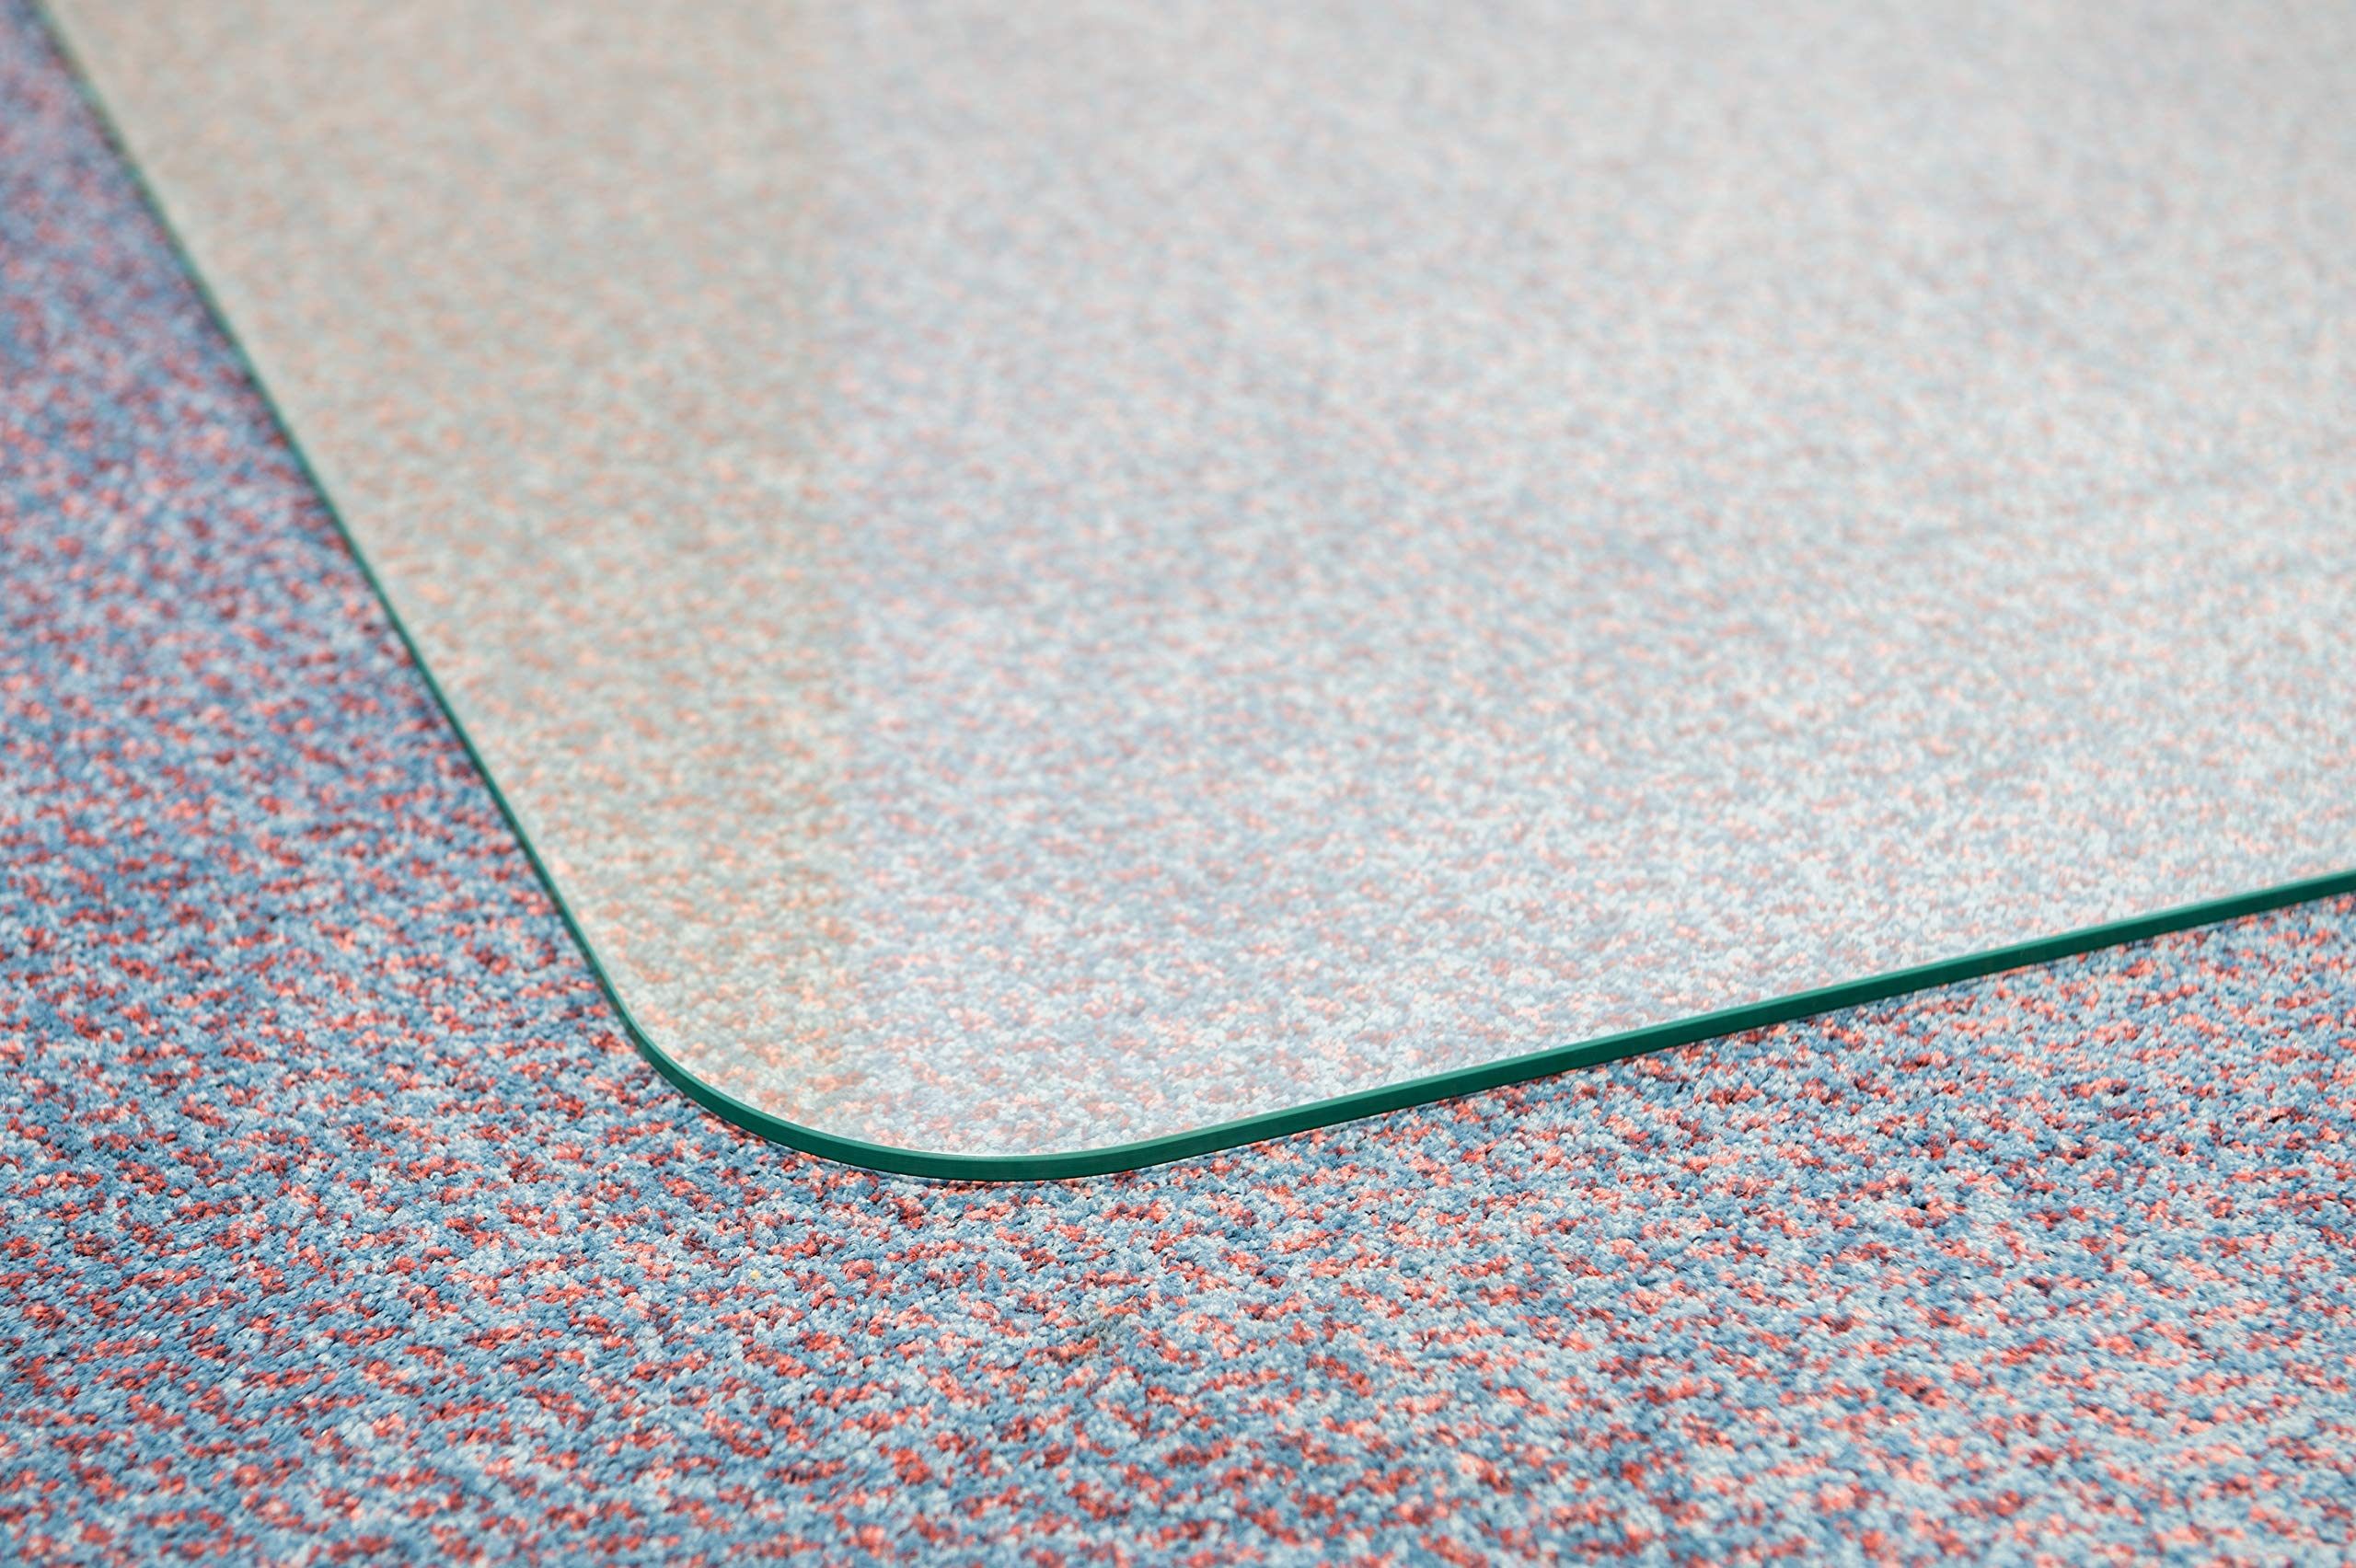 Cleartex Glaciermat, Reinforced Glass Executive Chair Mat for Hard Floors/Carpets, 36'' x 48'' (FC123648EG) by Floortex (Image #5)